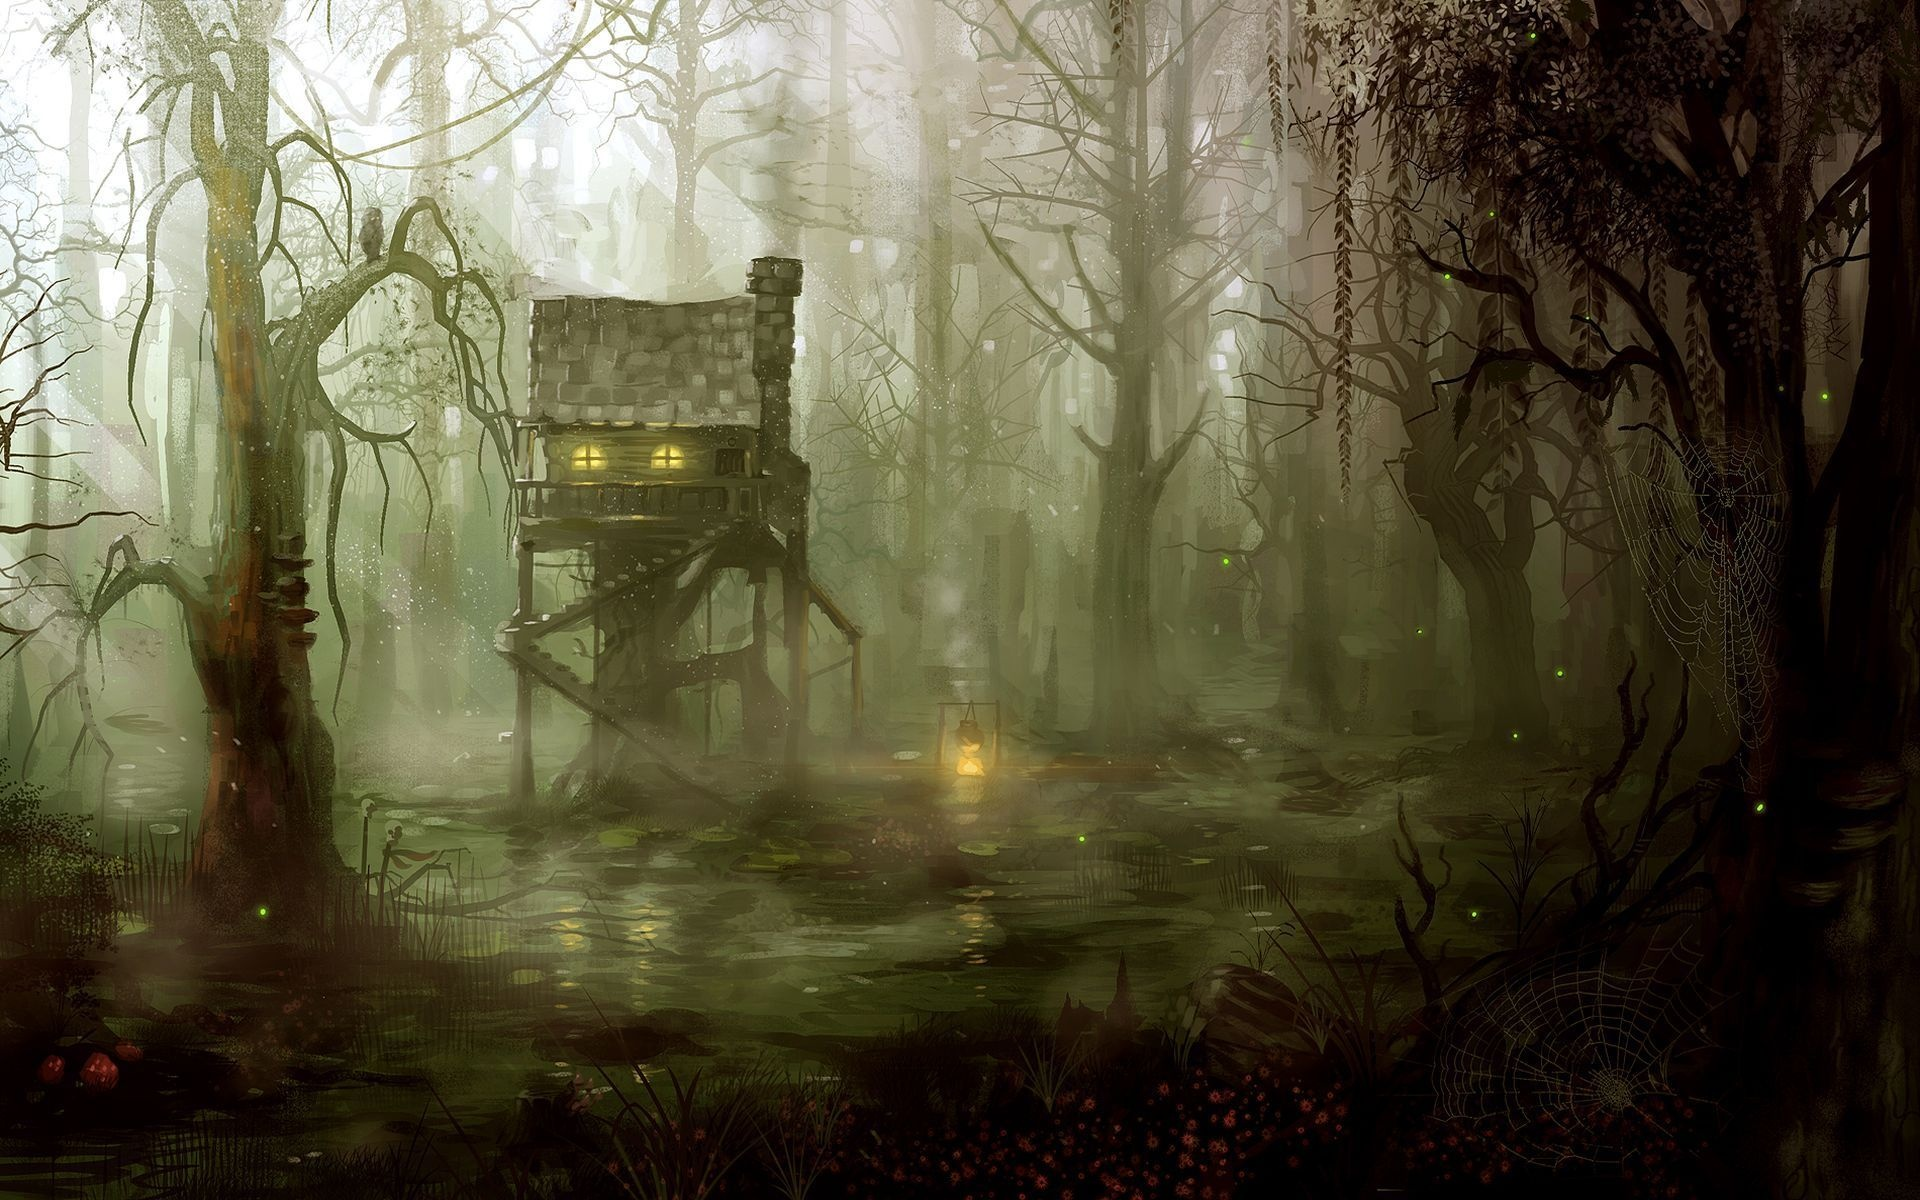 Drawn forest spooky Houses painting architecture artistic dark